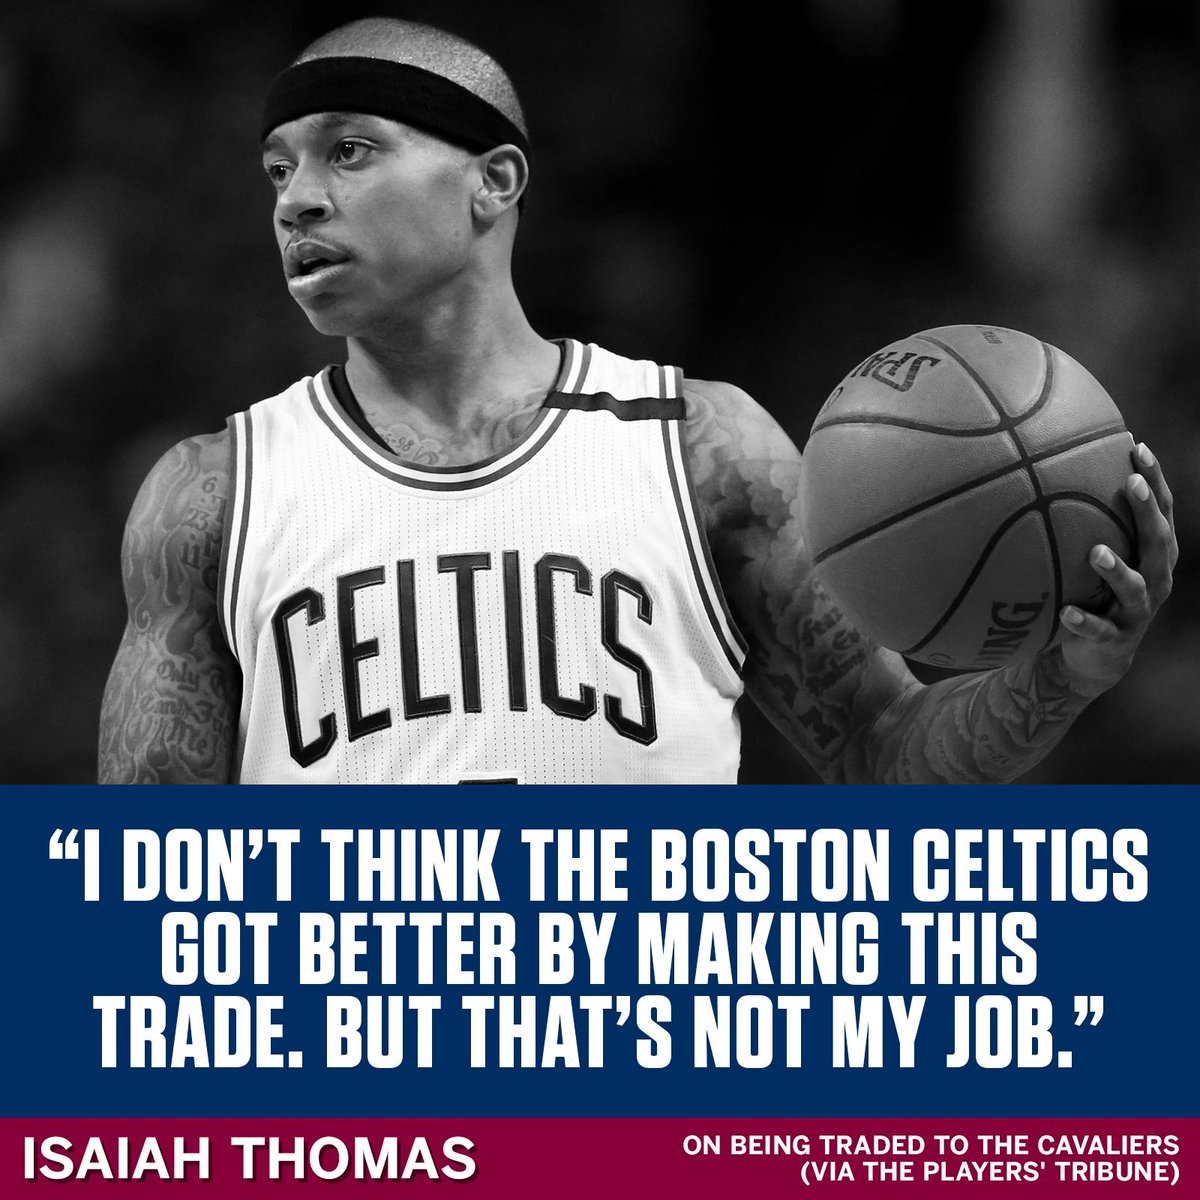 Isaiah Thomas shares his thoughts on the trade: